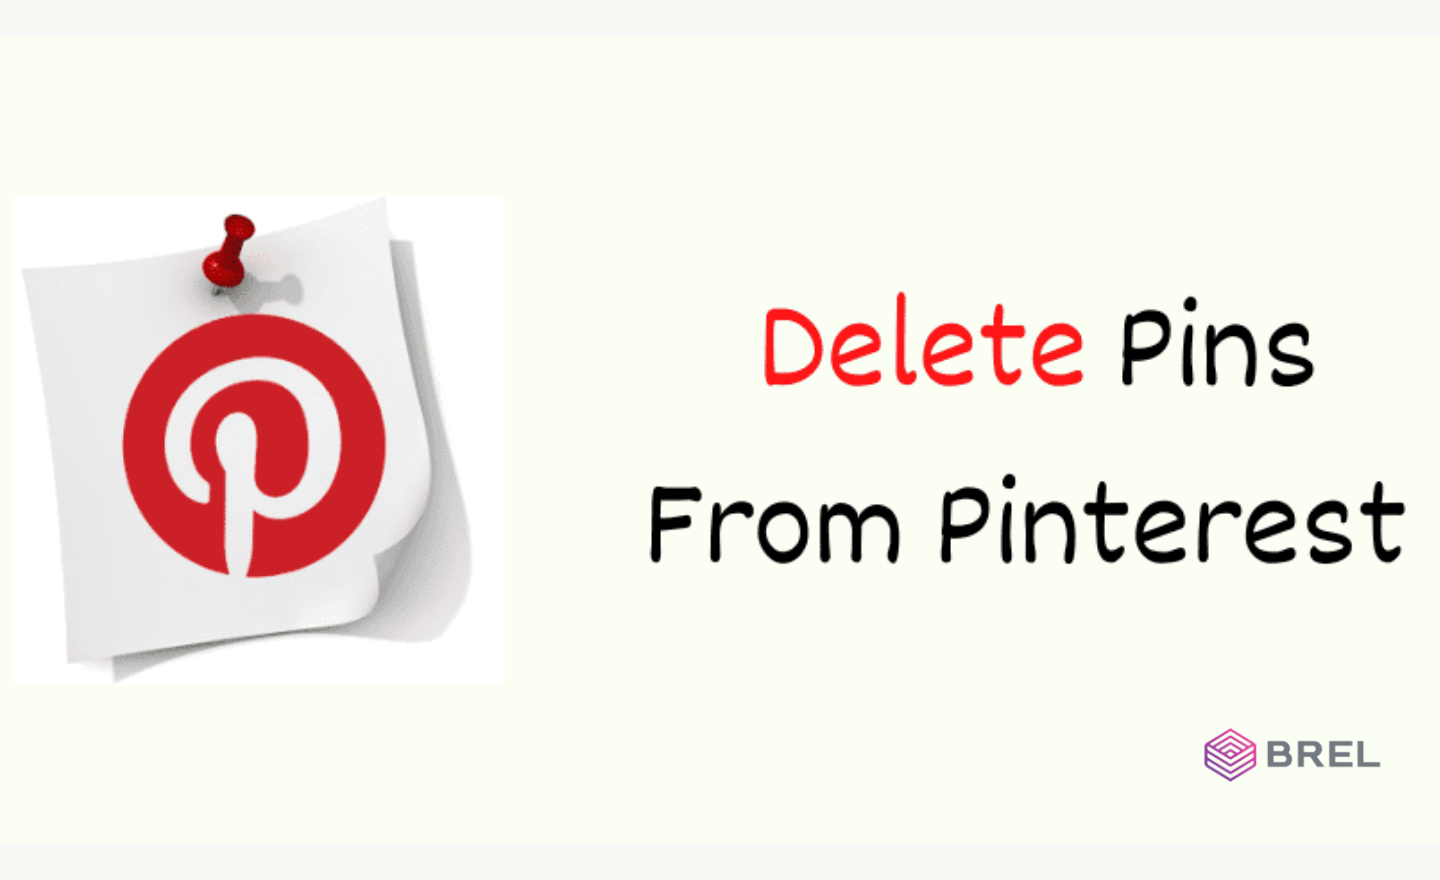 How to delete a pin on Pinterest